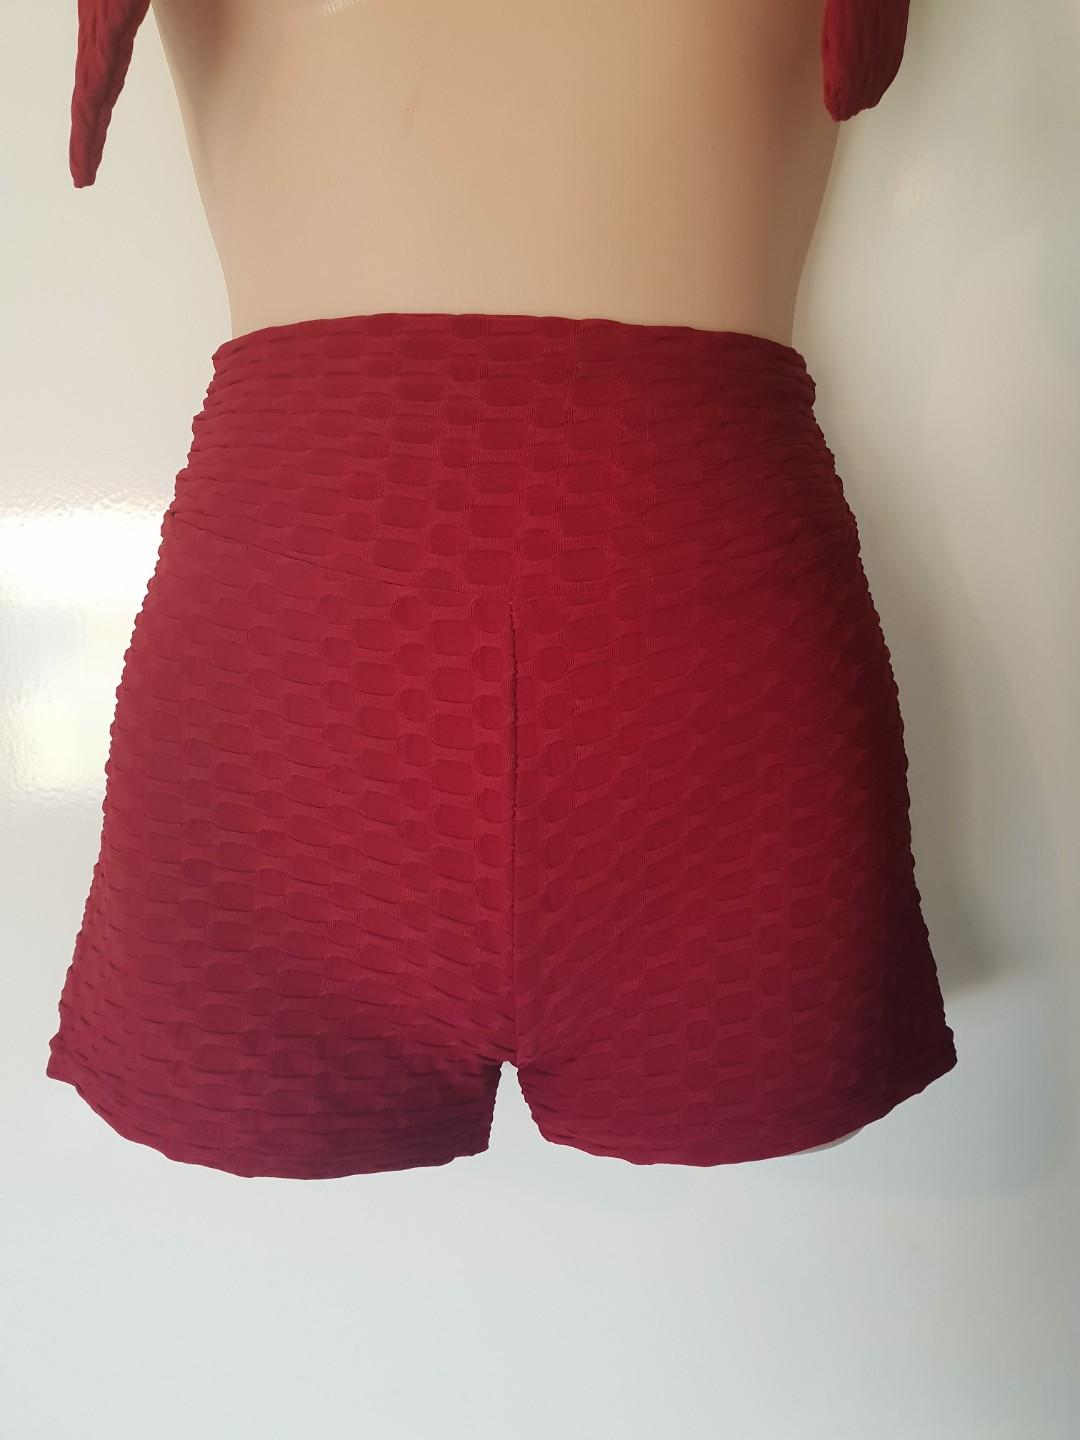 Wine Burgundy Textured High Waist Shorts Small New Comes With Waist Tie